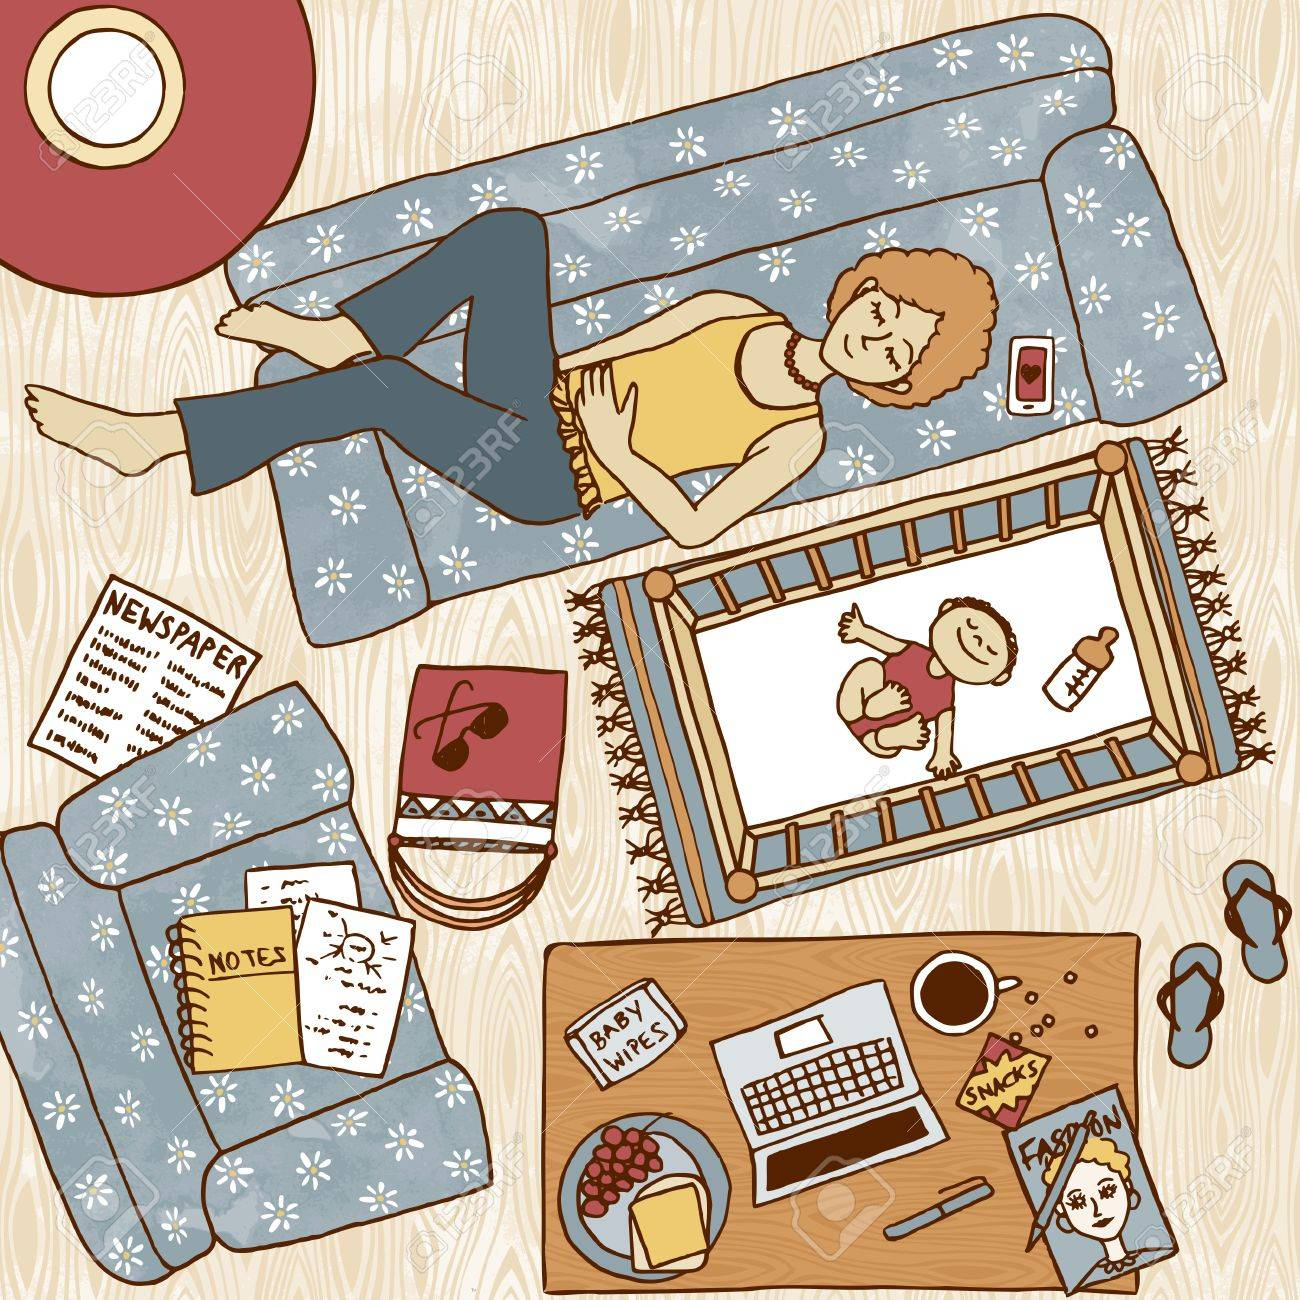 Baby bed next to mom - Top View Illustration Of A Mom Taking A Nap On The Couch With Her Baby Sleeping